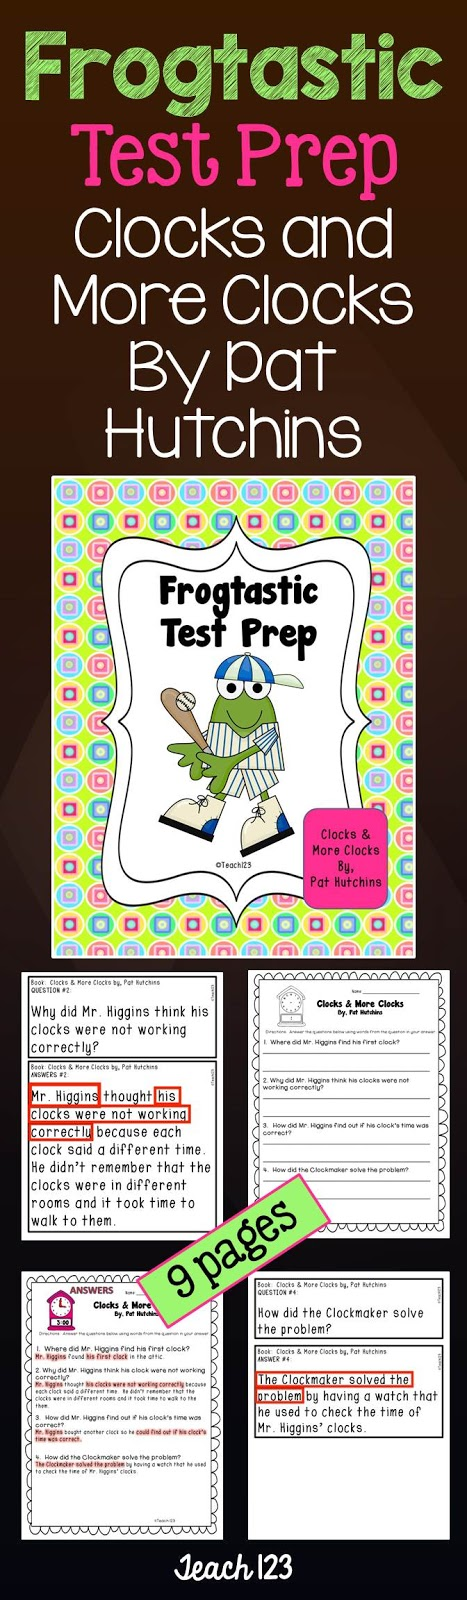 Teach 123 Frogtastic Test Prep Clocks and More Clocks by Pat Hutchins at TeachersPayTeachers